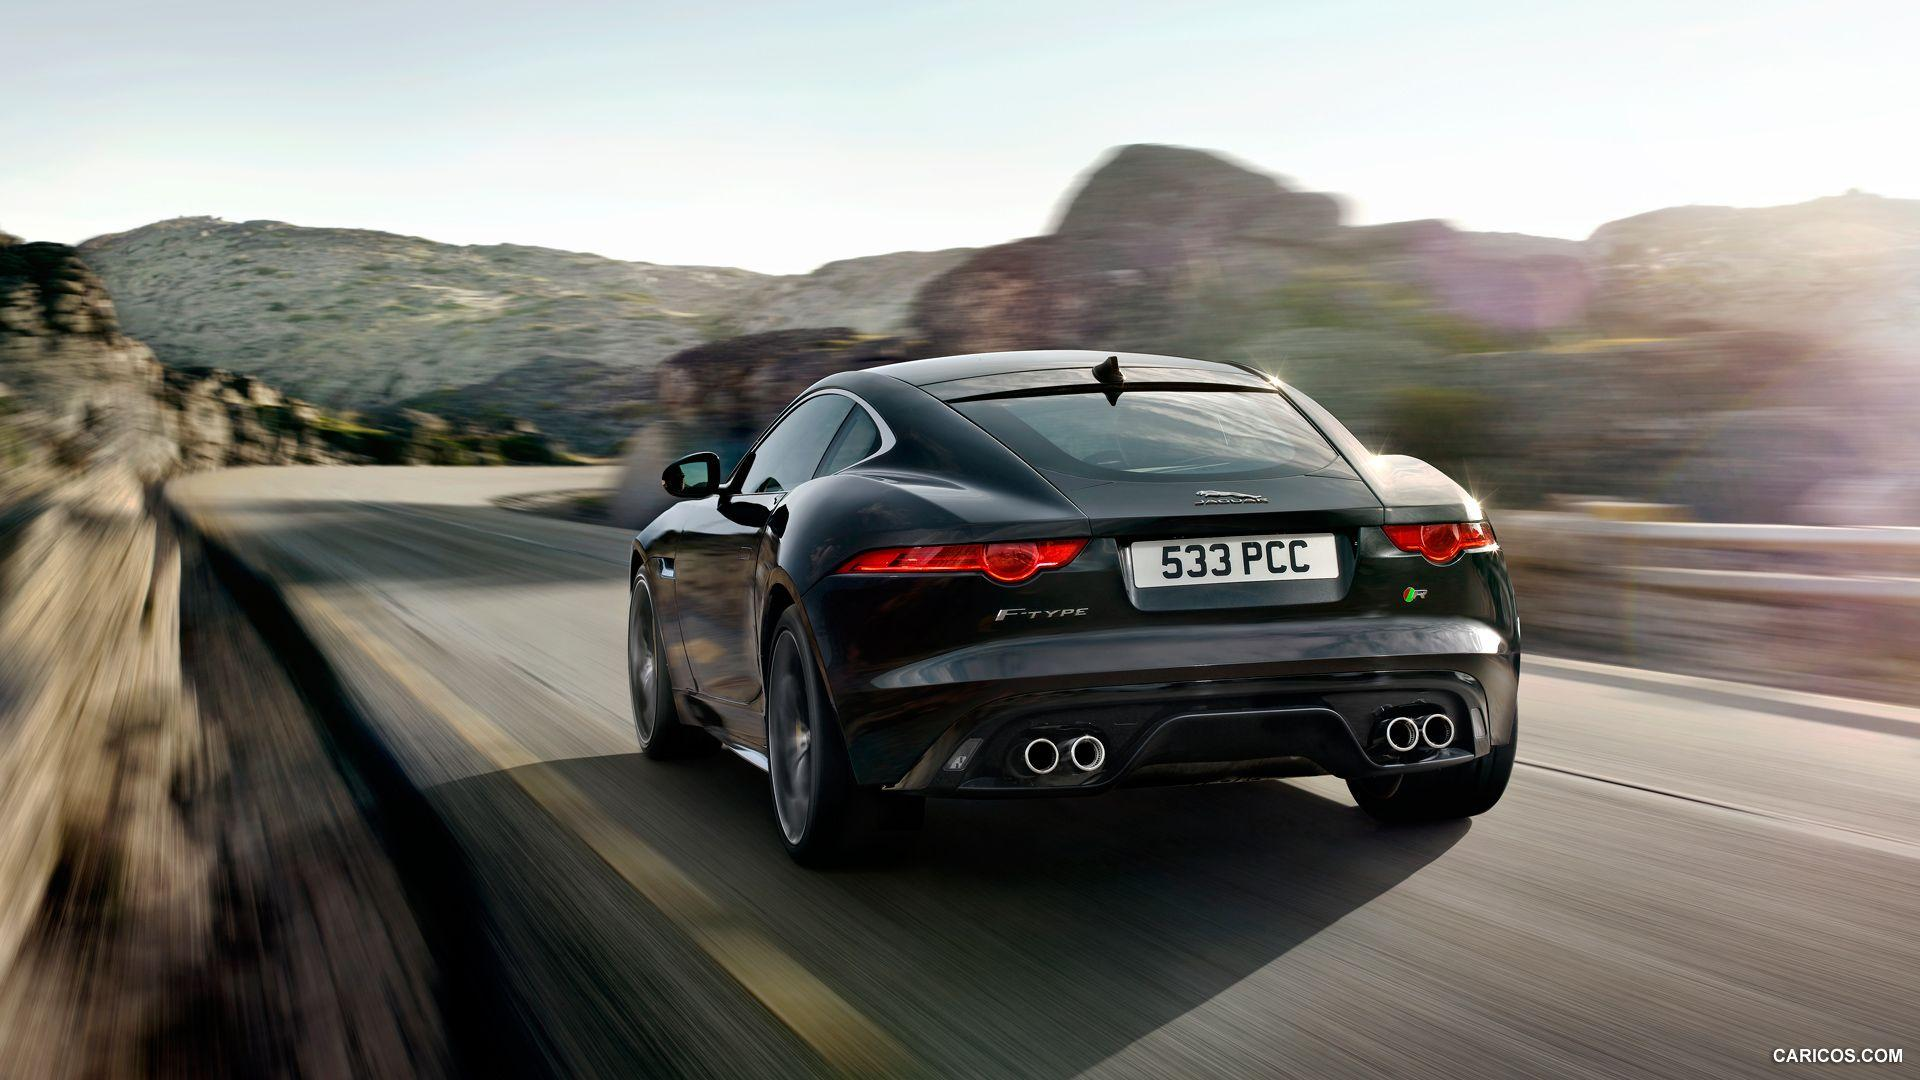 jaguar f-type wallpapers - wallpaper cave